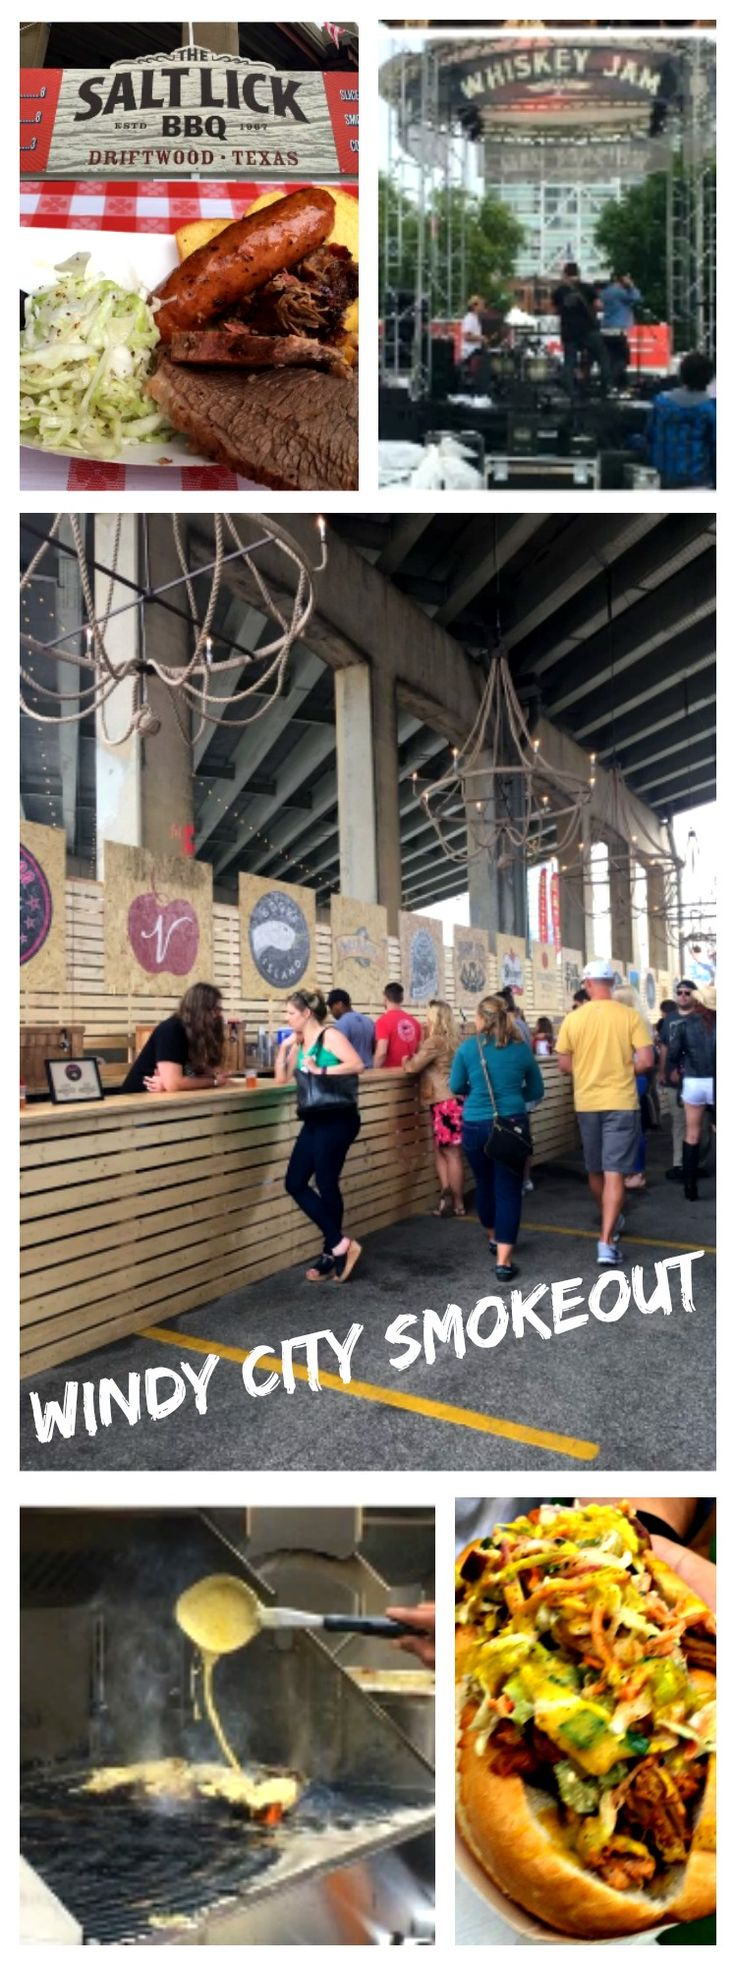 3 days, 21 Craft Beer options from all over the nation, 23 country music artists, 21 different stops serving the best BBQ in the country... why wouldn't you go to Windy City Smokeout Festival?!